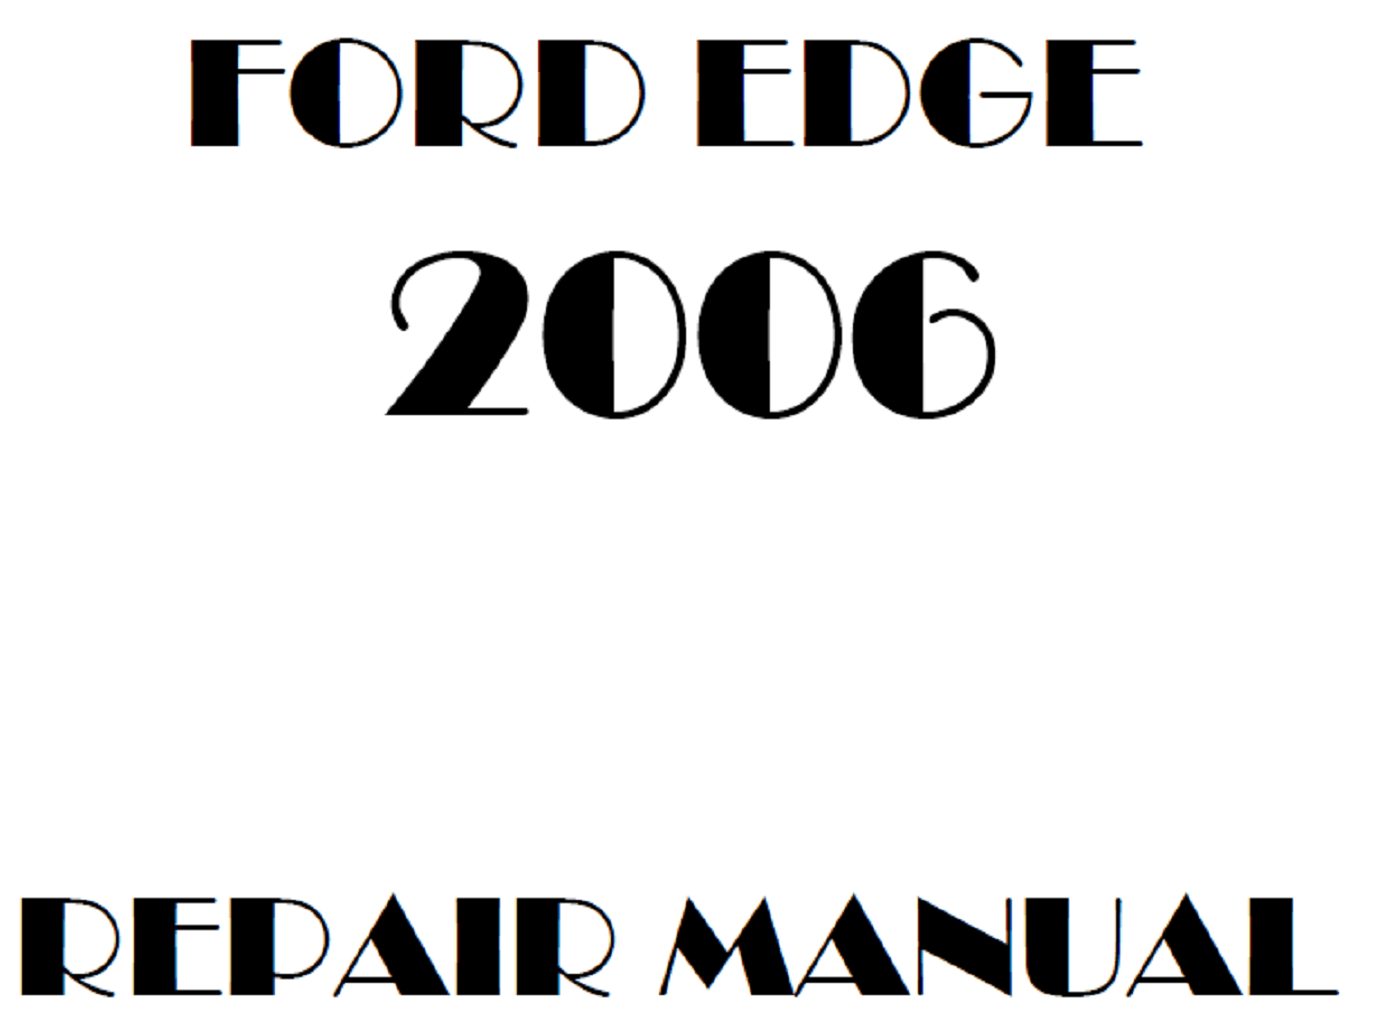 2006 Ford Edge repair manual